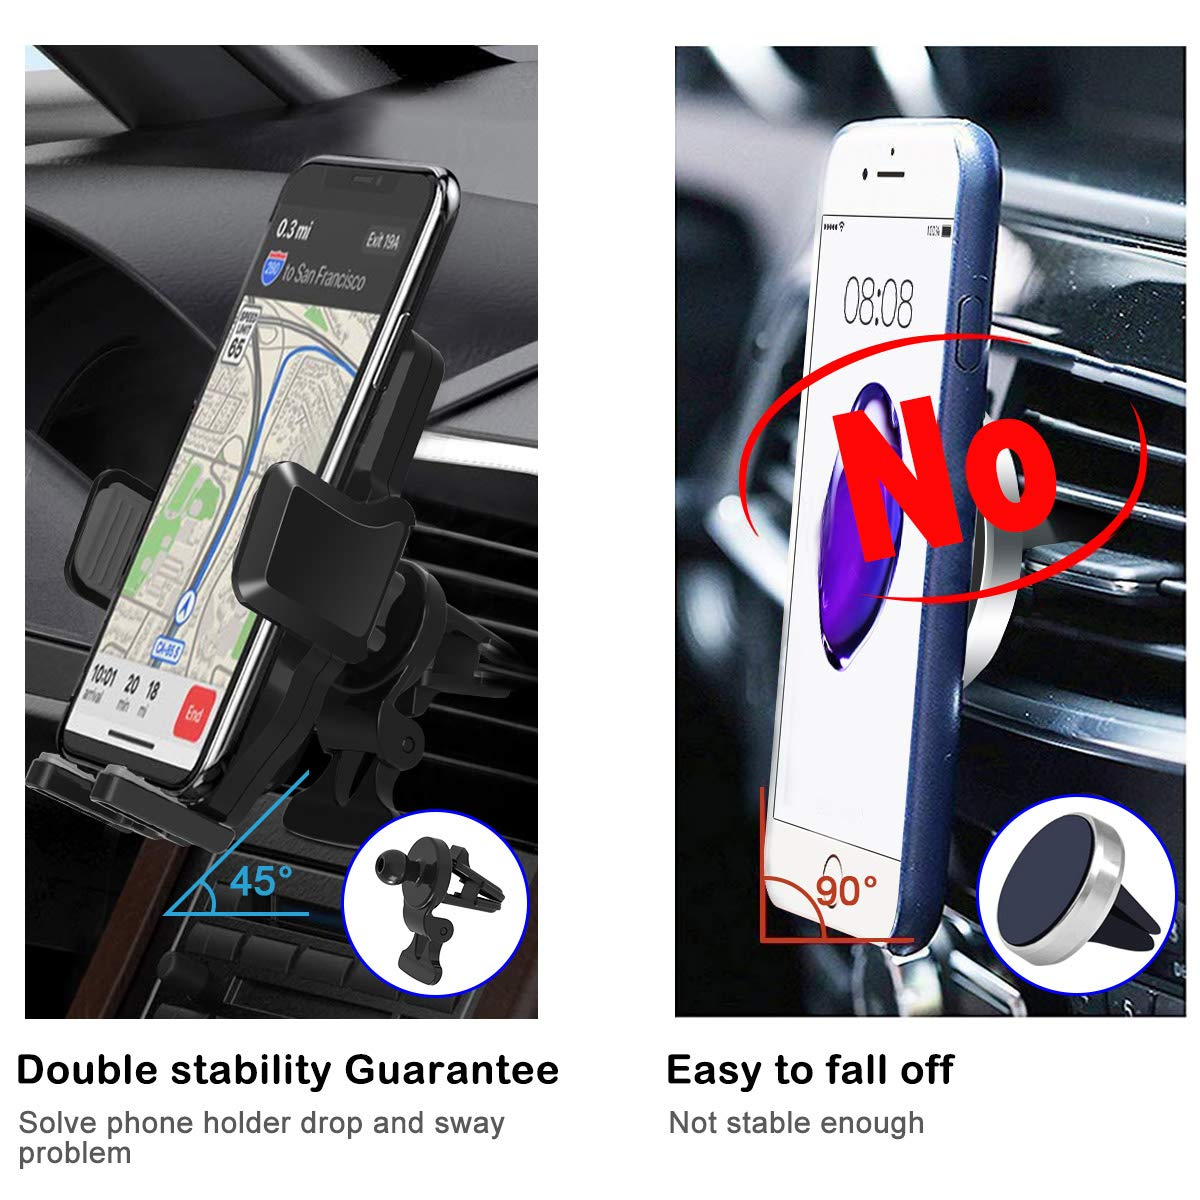 Car Phone Mount, Air Vent Cell Phone Holder for Car Universal Gravity Automatic Clip Locking Car Phone Holder Cradle Compatible with iPhone Xs MAX/XR/X/8/8Plus/7/7Plus/6s, Galaxy S10/S9/S8 LG Pixel